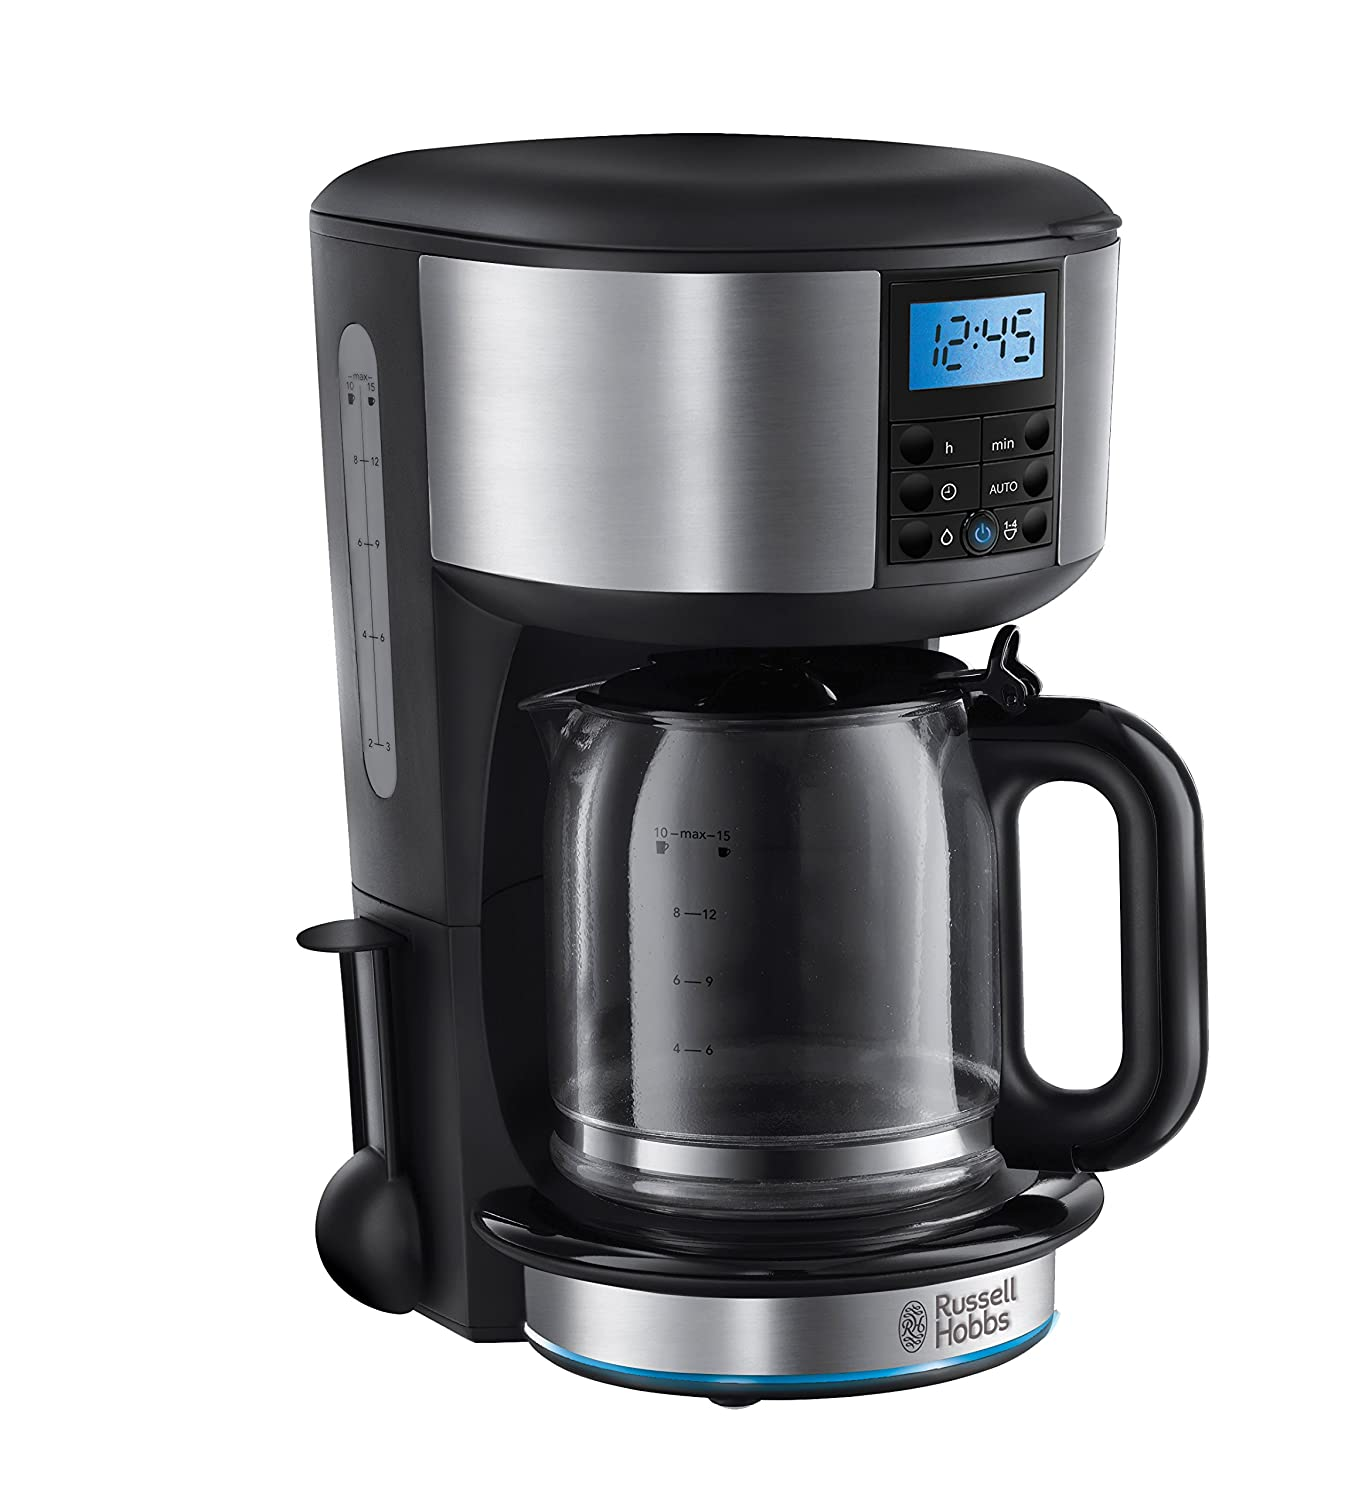 Electronic Filter Coffee Machines Uk amazon co uk filter coffee machines home kitchen russell hobbs 20680 buckingham maker 1 25 l black and silver